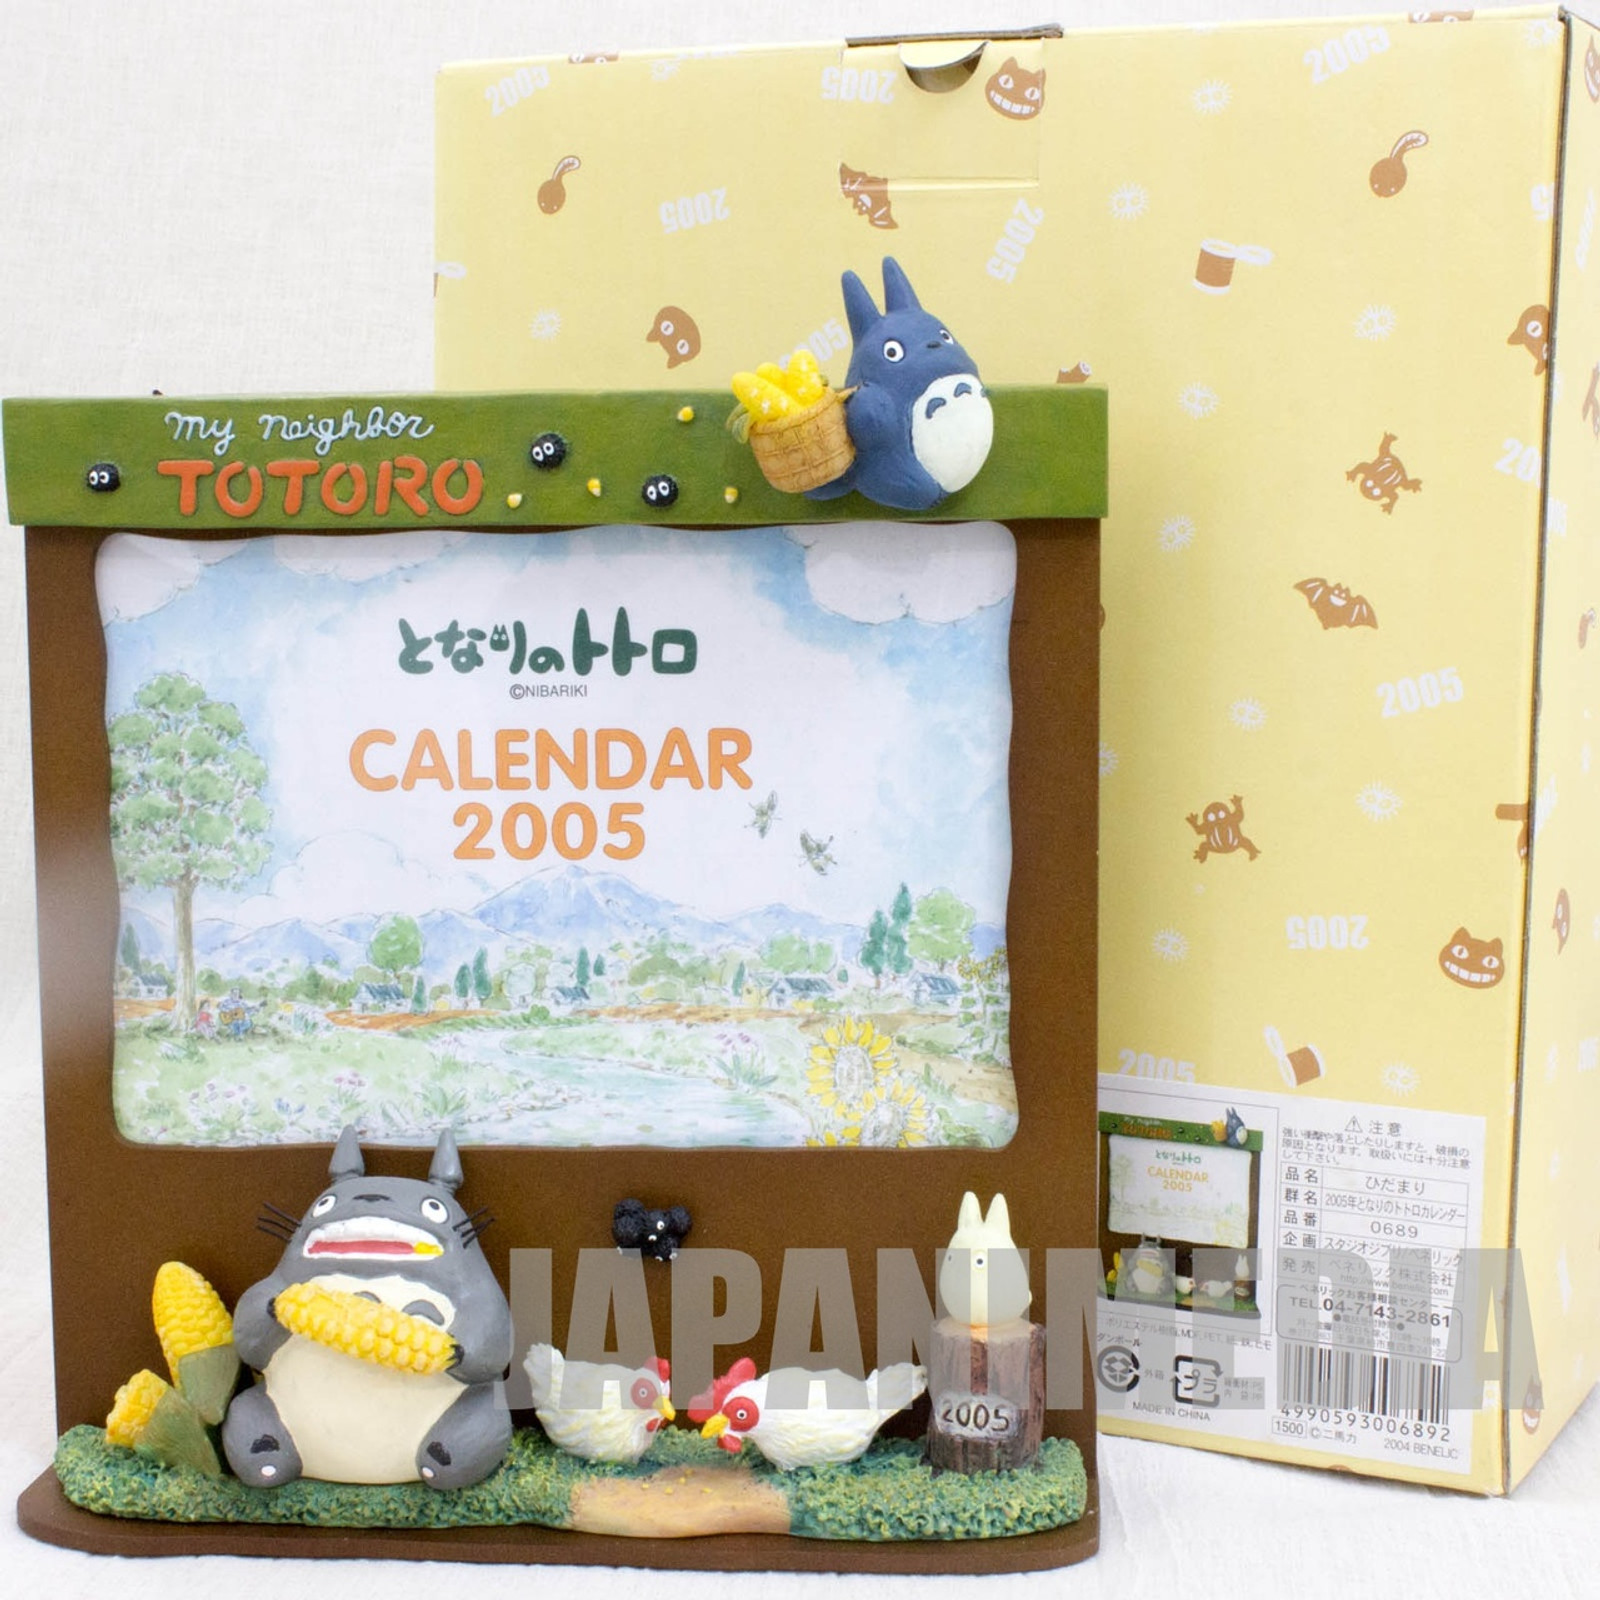 My Neighbor Totoro Calendar 2005 Photo Frame Nibariki Ghibli JAPAN ANIME MANGA